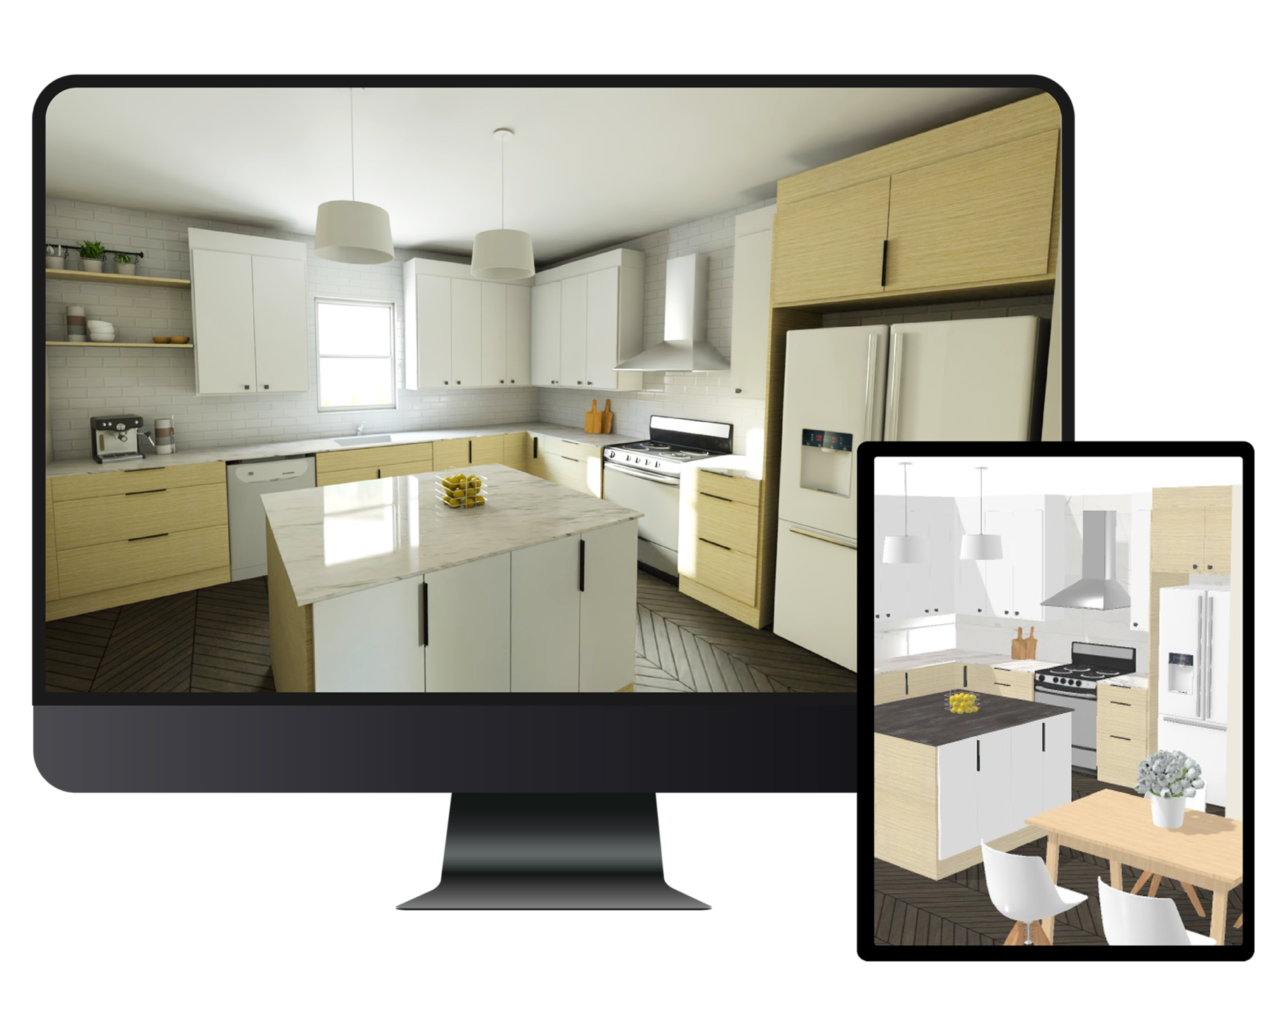 Visualize your kitchen